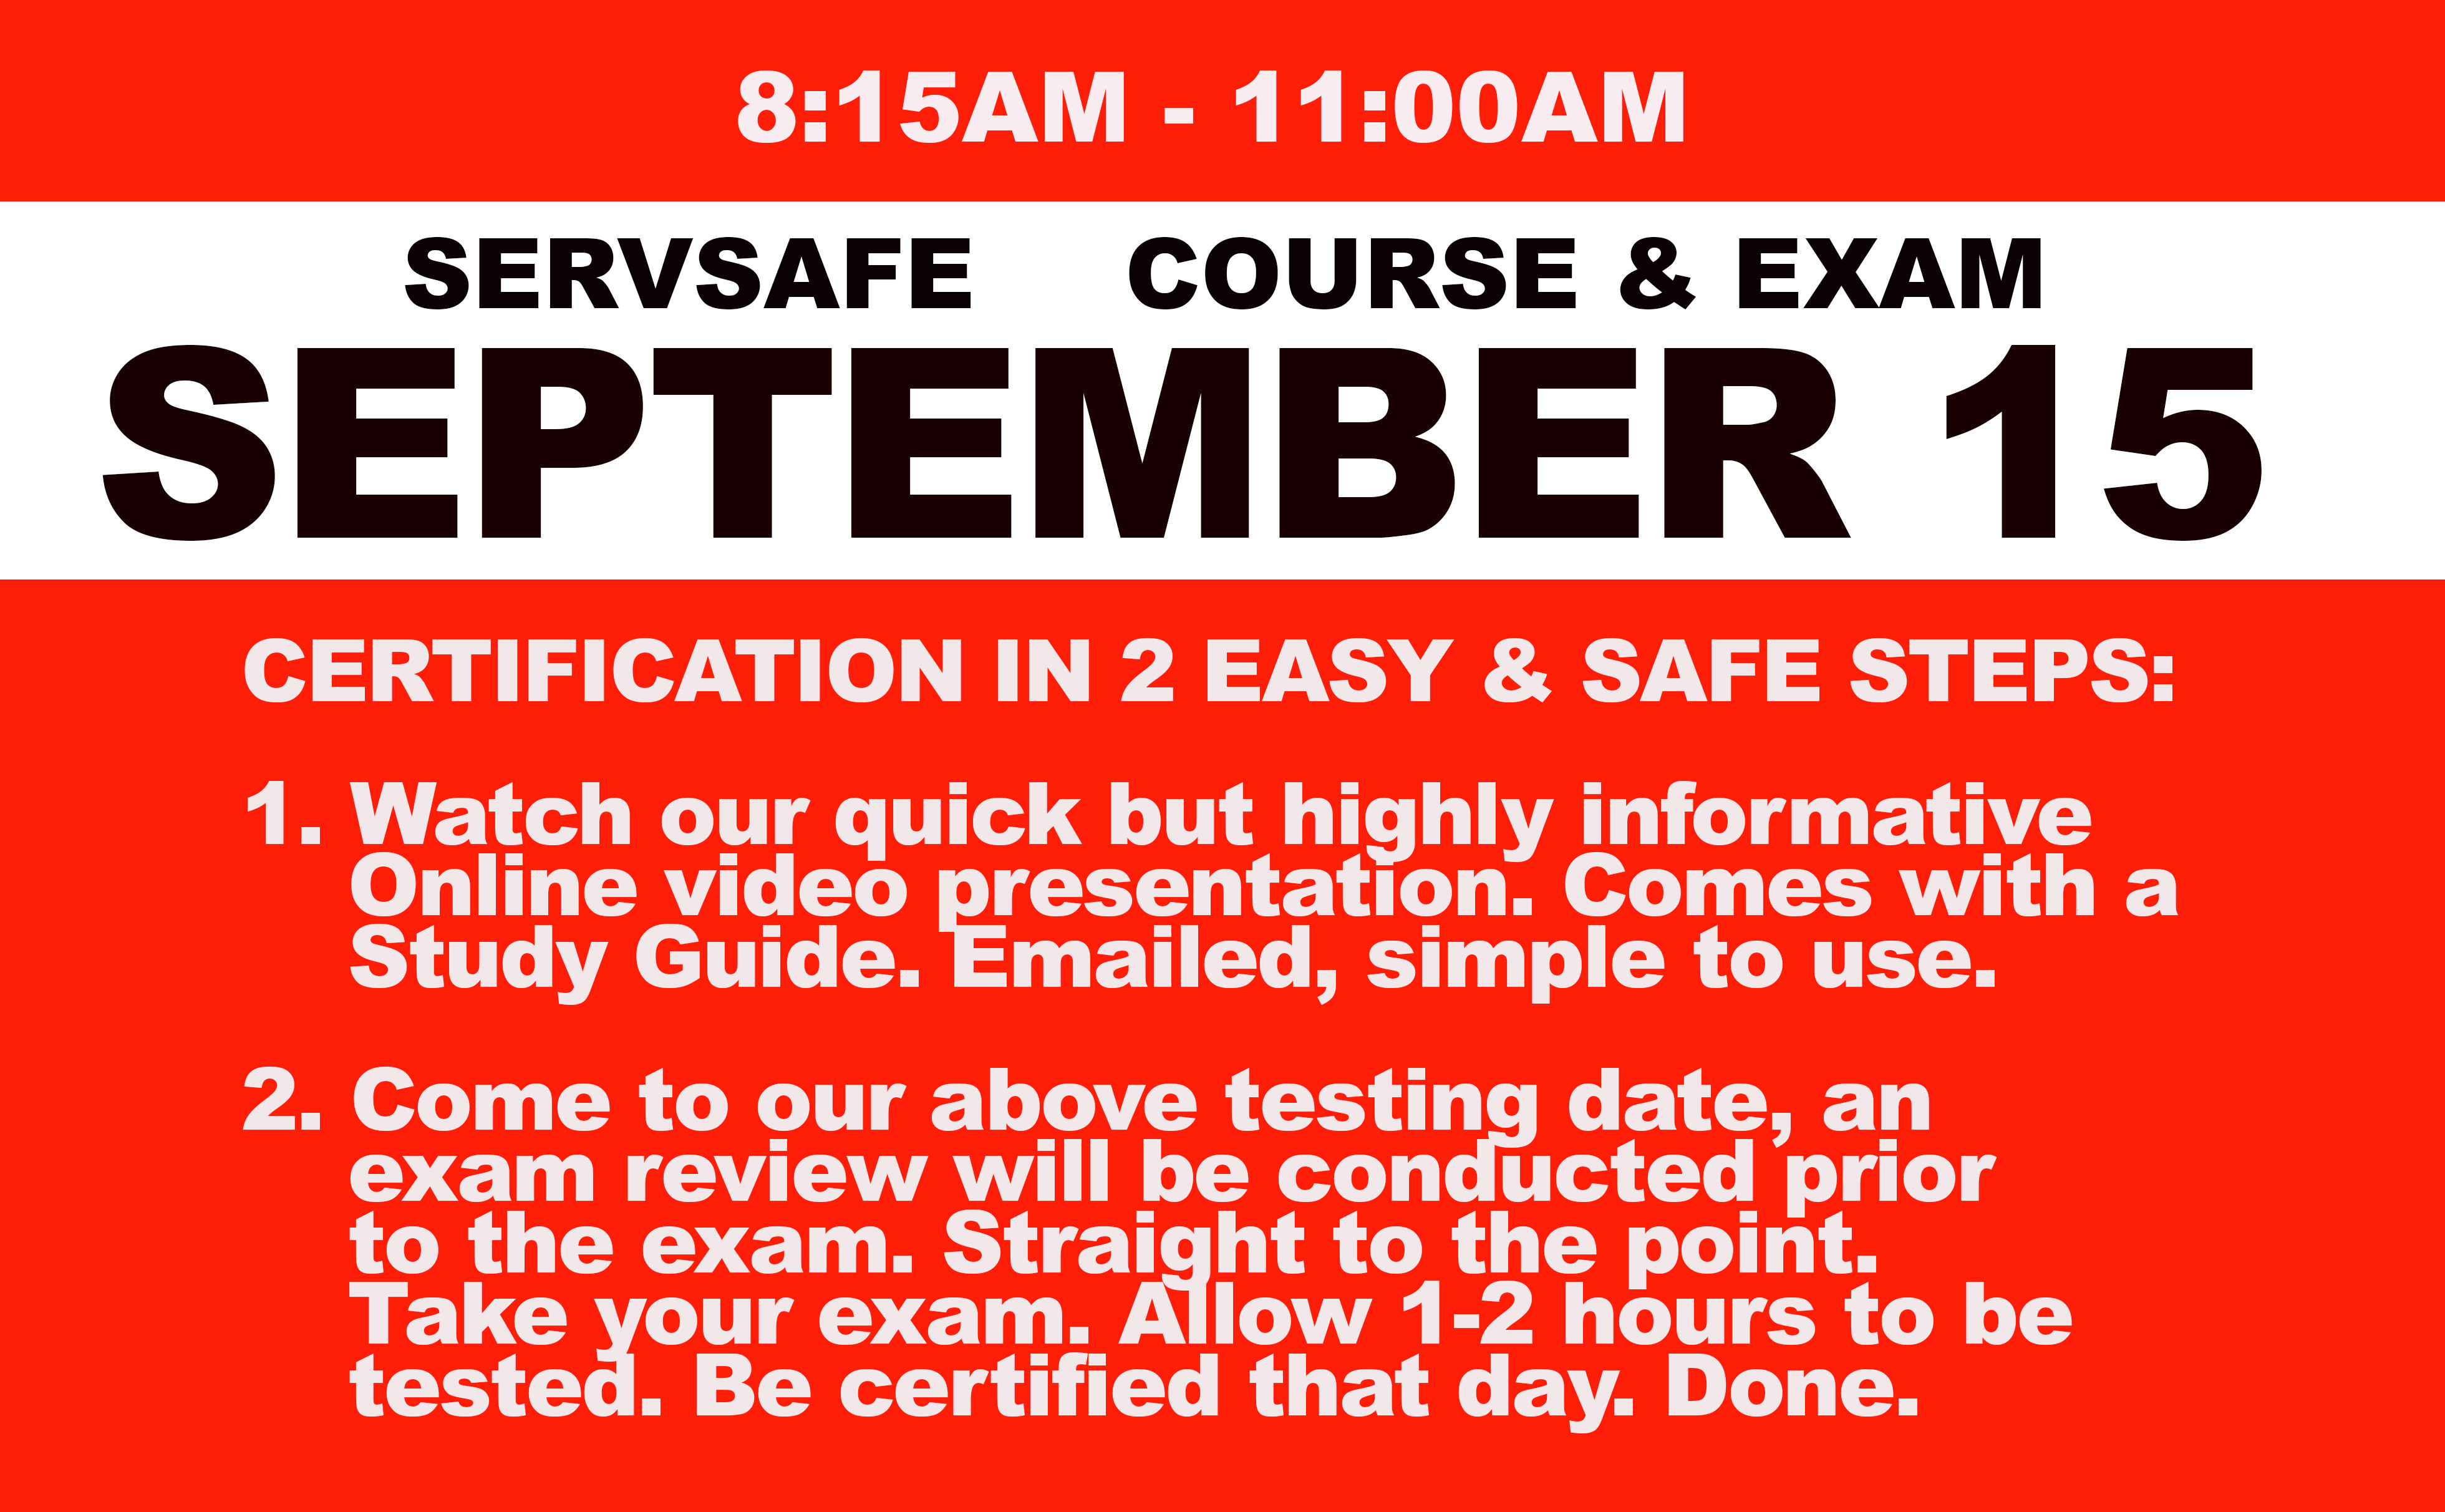 Online Course + Exam  Wed. September 15